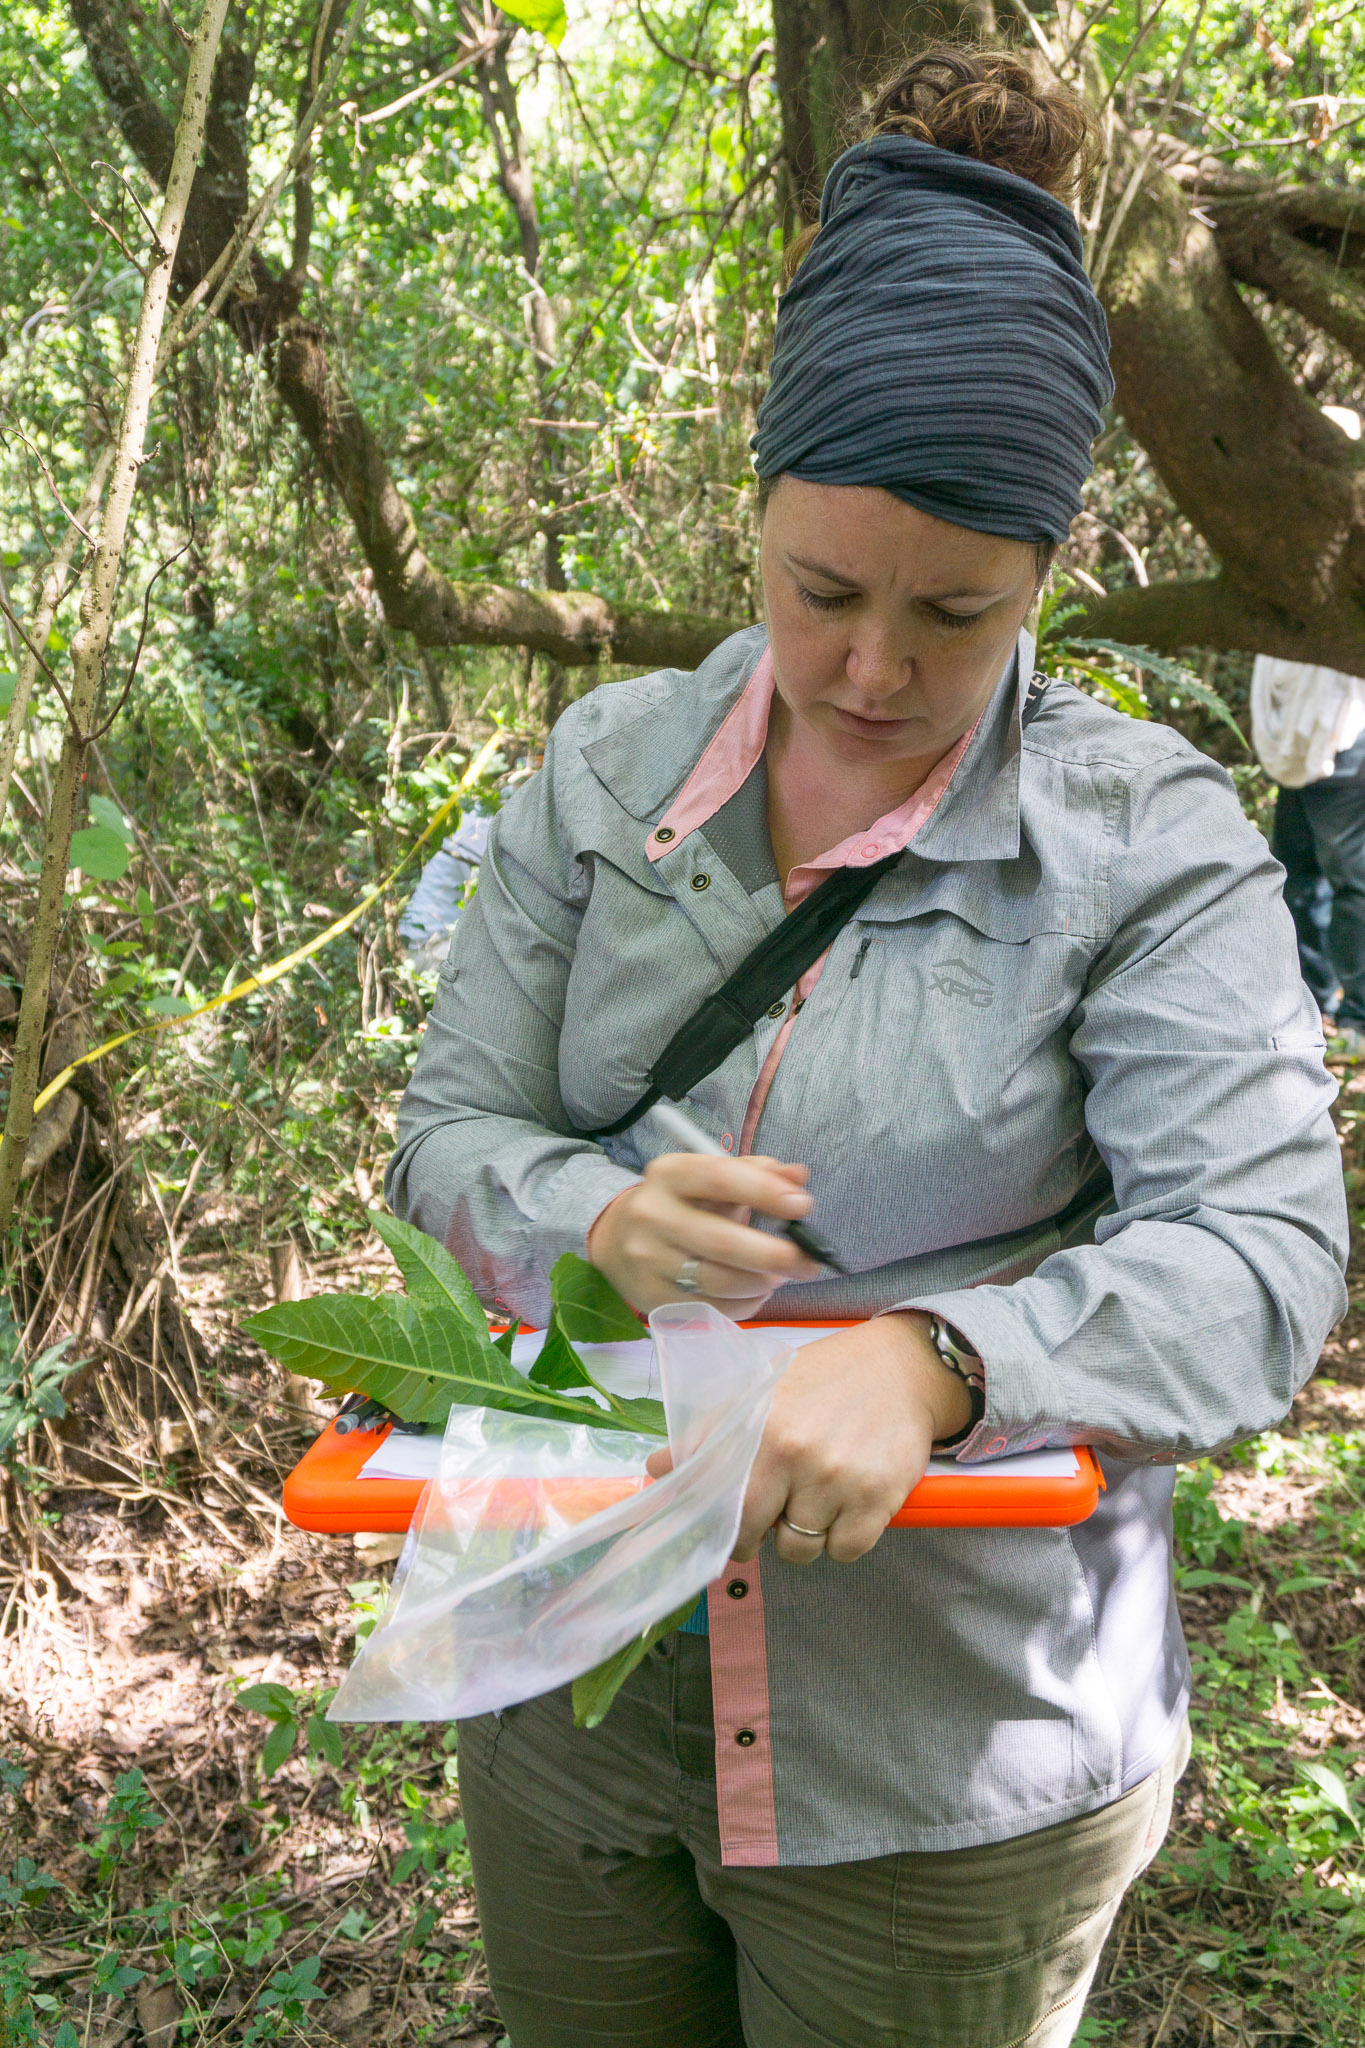 Dr. Carrie Woods collecting leaf samples from a sacred forest.